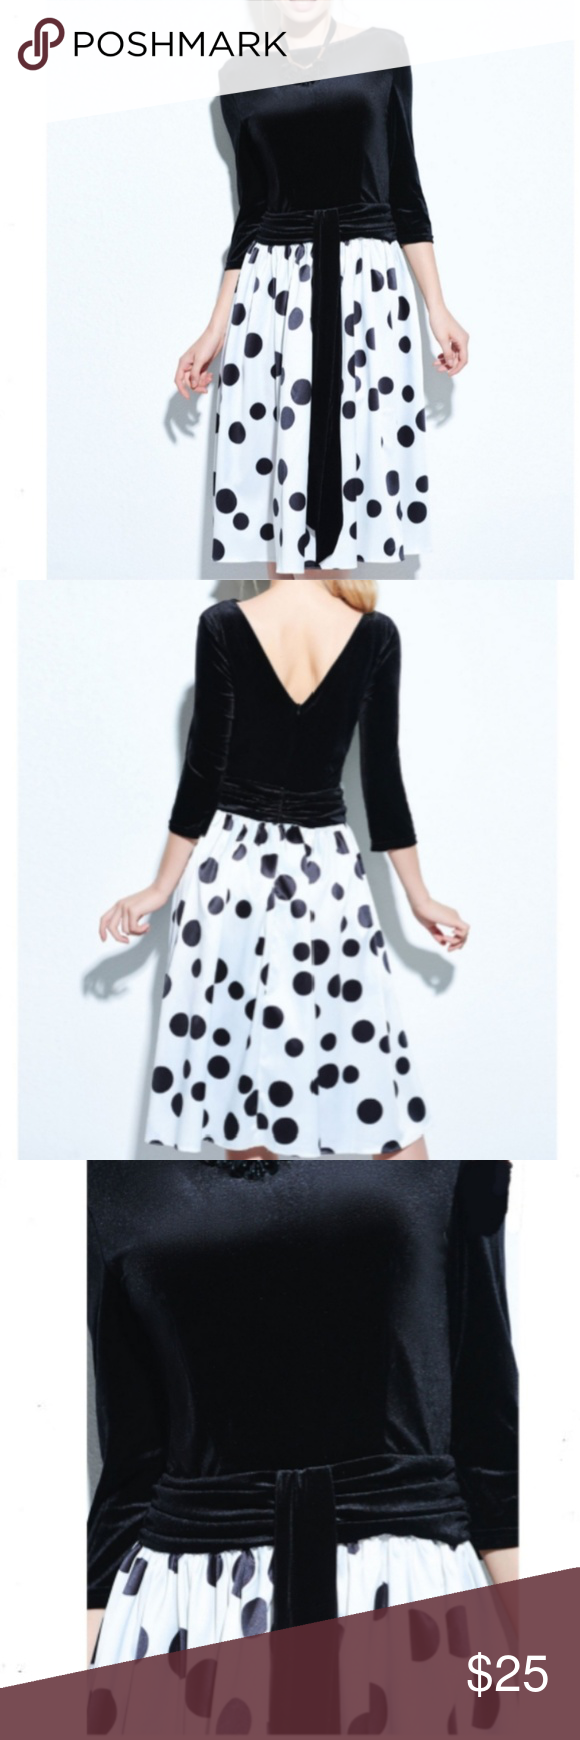 Black Color Block Polka Dots A-Line Dress Sz L/XL NWT Black Color block backless polka dots A-Line tea length dress 3/4 length sleeves, Stretchy top with back zipper, size L/XL  the tag says xxl but it's from China and runs smaller than USA sizes. Dresses Backless #backlesscocktaildress